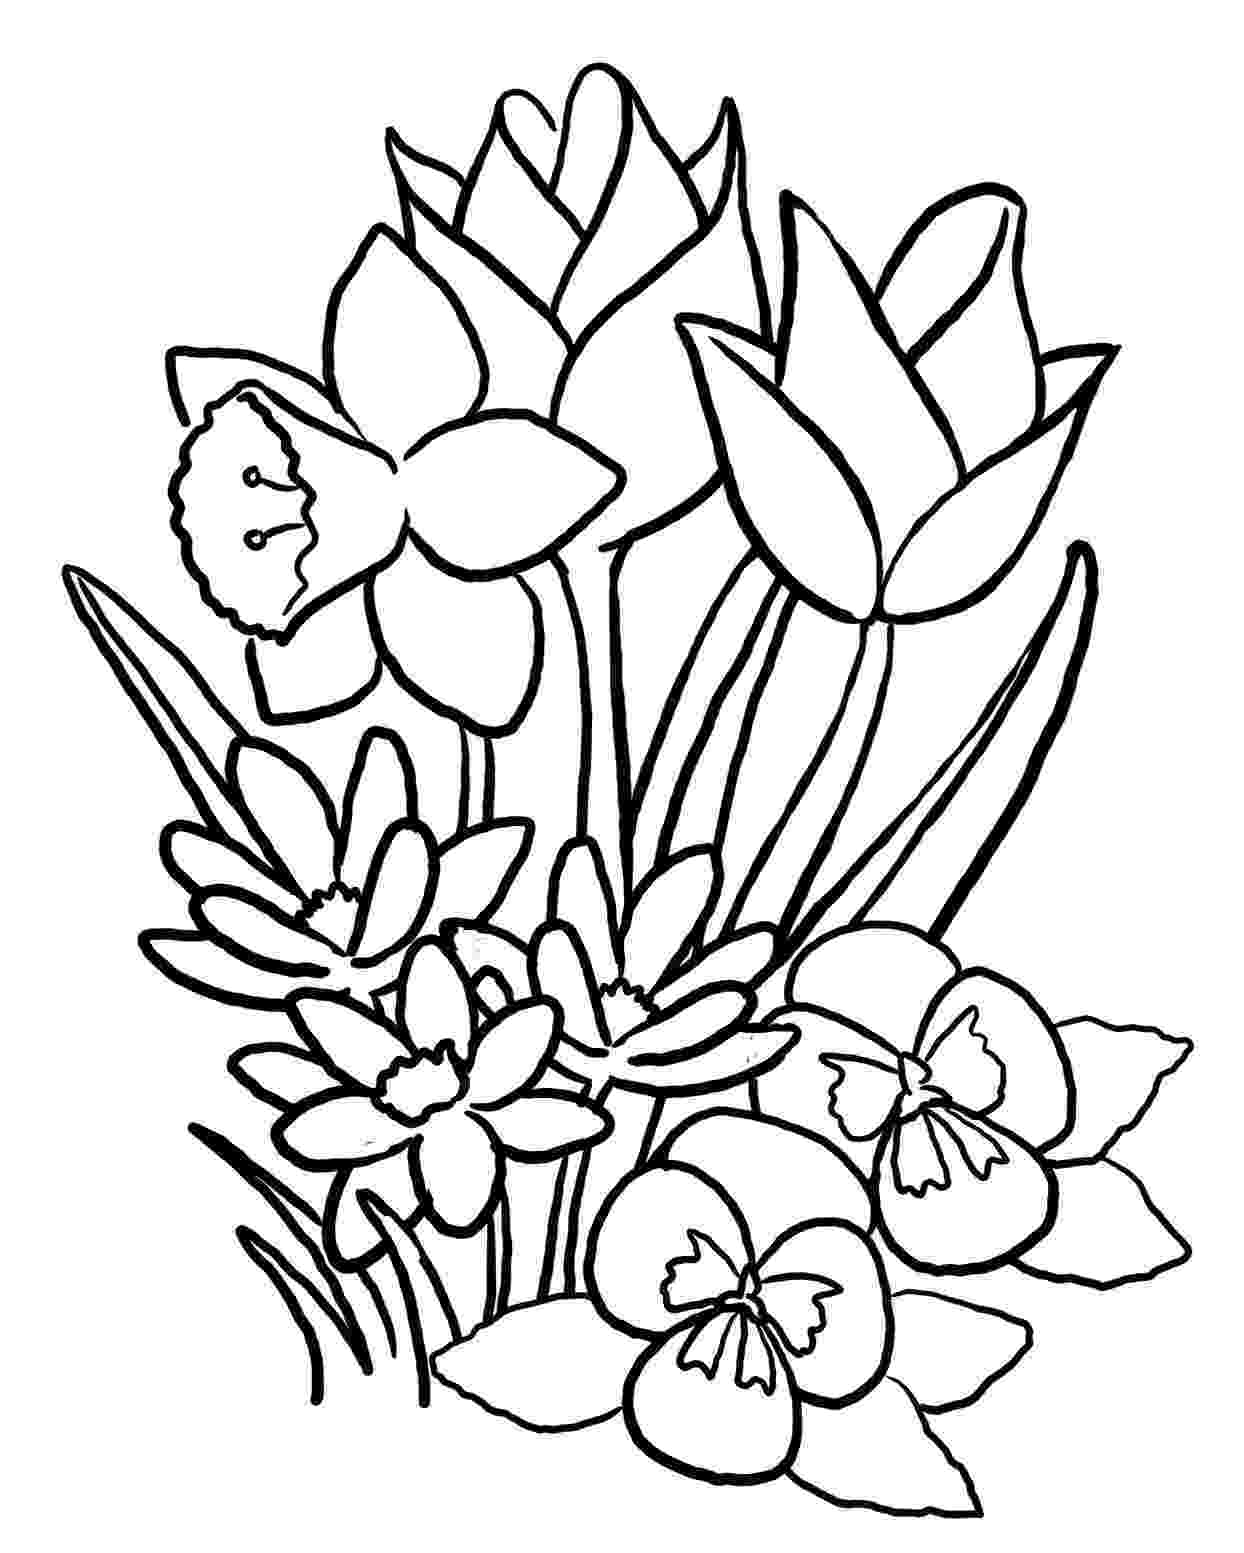 flower printable pictures free printable flower coloring pages for kids best printable pictures flower 1 2